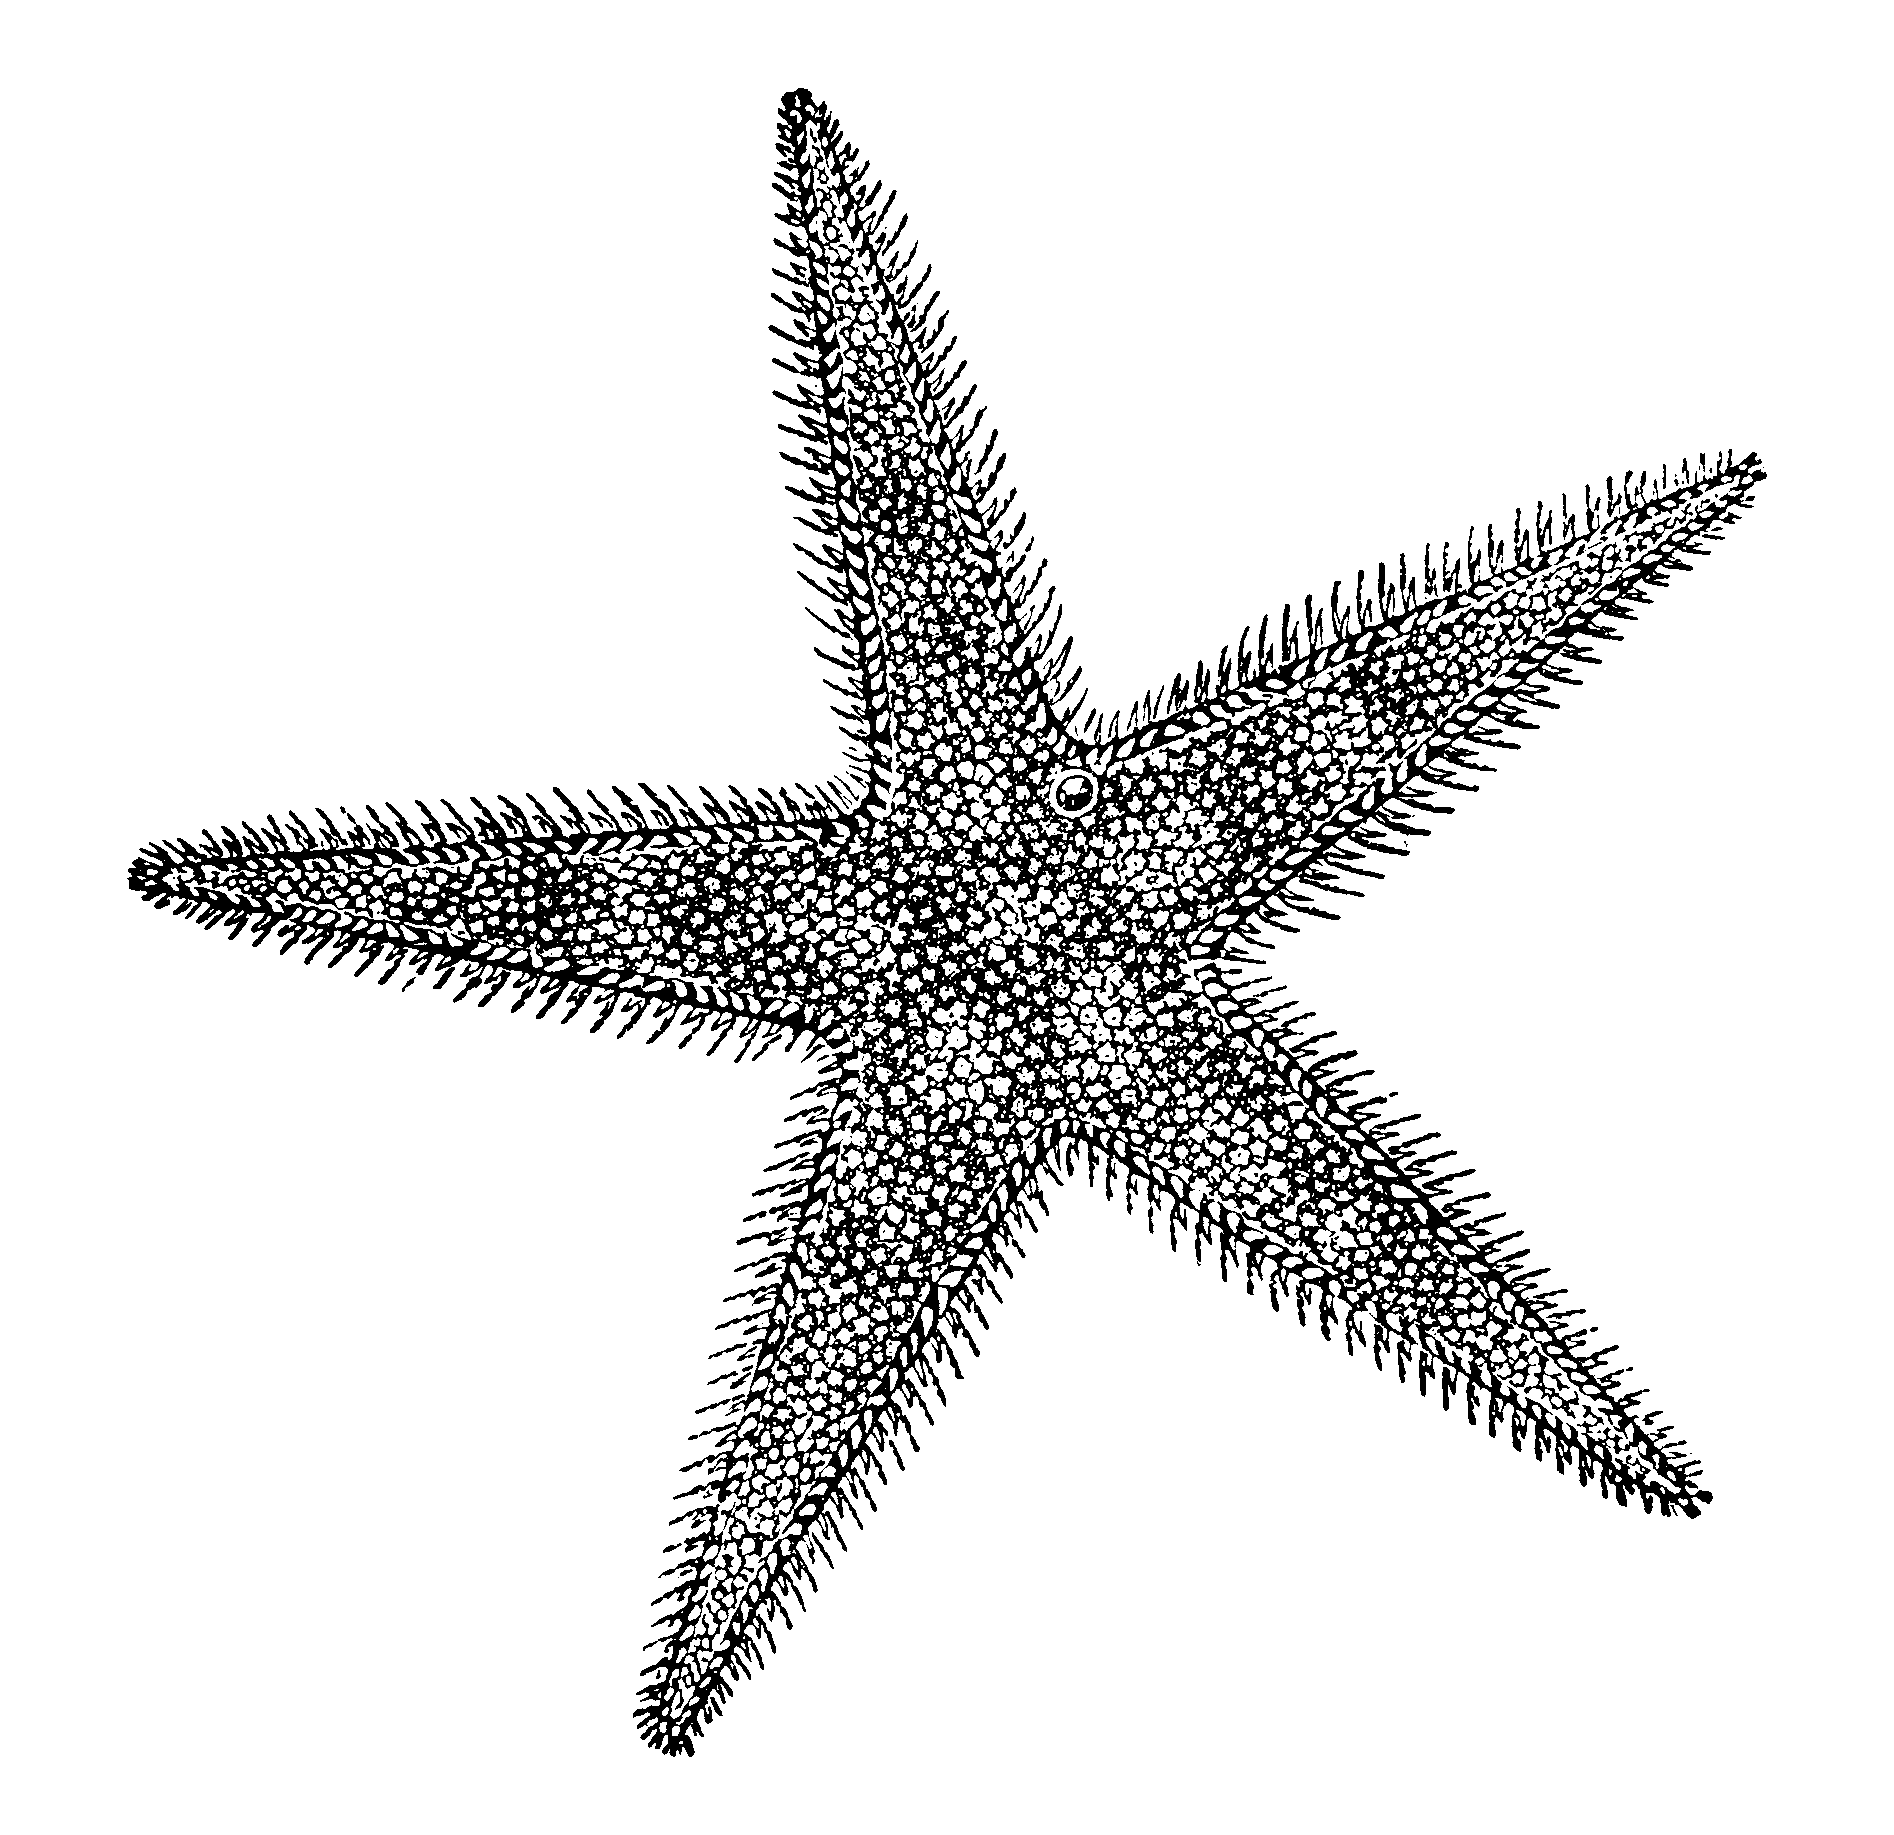 small resolution of sea star diversity drawing